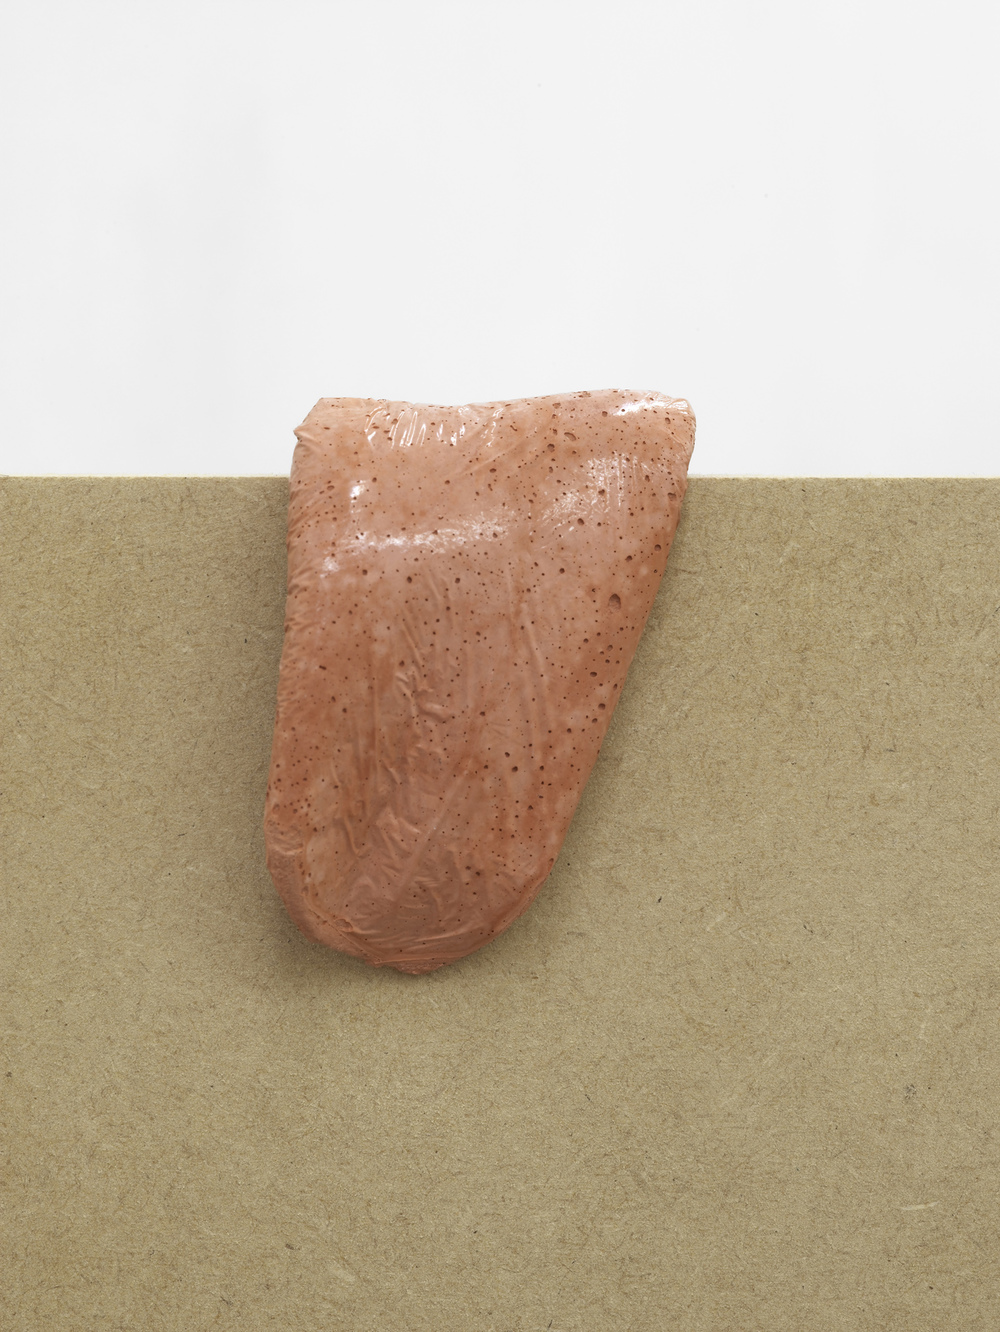 analogue series (tongue) 2013 Concrete 8.5 x 6 x 5 cm / 3.3 x 2.3 x 1.9 in